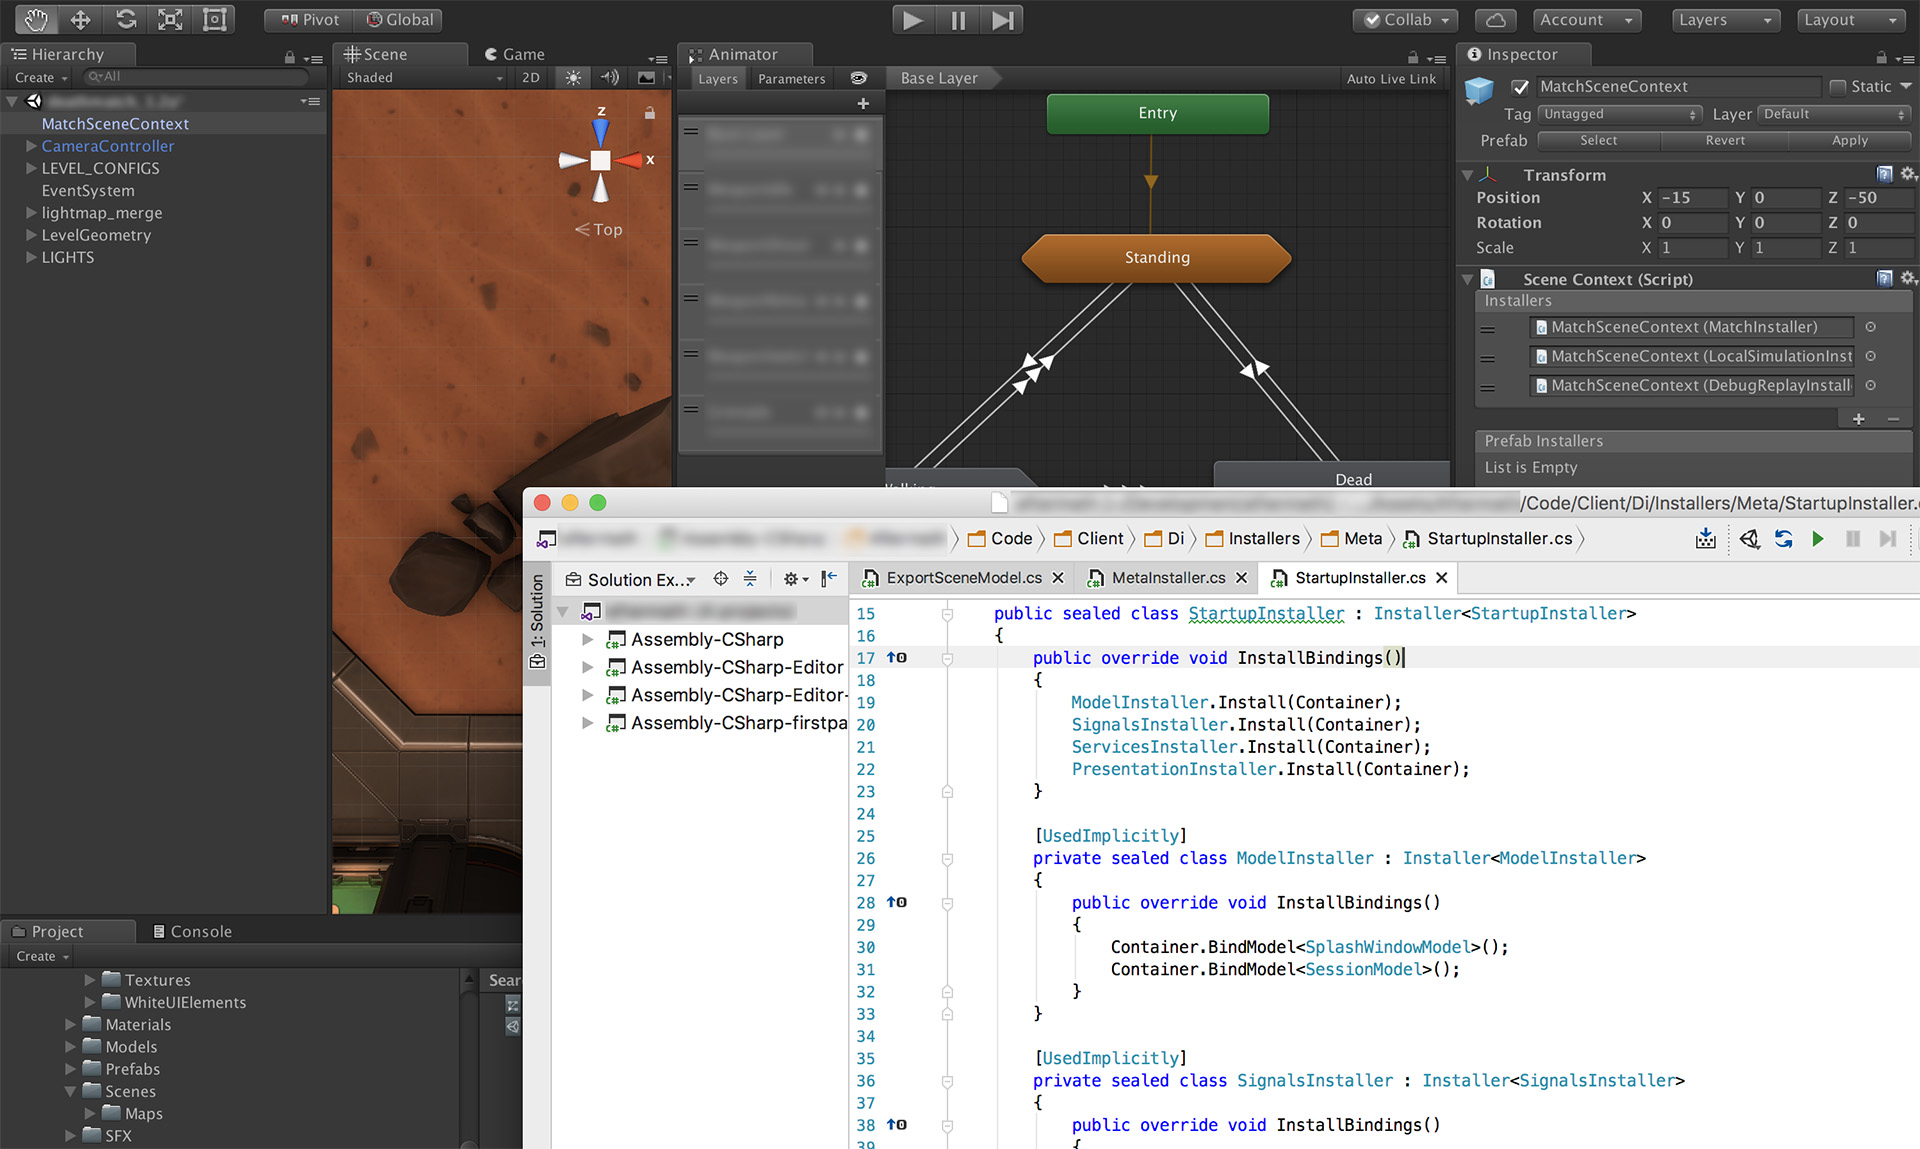 As we swung to mobile fast paced shooter: technology and approaches             A year ago we had one project in our company - a mobile shooter War Robots with relatively slow, but colorful and intense battles. The game continues to evolve, it has tens of millions of installations and players around the world, constantly updating. At some point, we wanted to make a dynamic shooter on Unity with speeds comparable to Overwatch, CS: GO or Quake. But to realize the conceived for mobile platforms (primarily iOS and Android) based on War Robots with the current architecture and approaches was almost unrealistic.         We understood how to do this in theory - there are many articles, presentations on YouTube, detailing how to write a shooter,  How to work with the network  , what problems arise and how to solve them. There is no Rocket Science, all these approaches were invented even 30 years ago and during this time they have not changed much. BUT: we did not have practice.         Looking ahead, I will say - we managed to realize what was planned. We created a fast dynamic shooter for mobile platforms, which is now in beta testing and is being actively developed. And I would very much like to share all this. This is the first, overview article with a listing and a brief description of practically everything that we use (please do not confuse it with             A year ago we had one project in our company - a mobile shooter War Robots with relatively slow, but colorful and intense battles. The game continues to evolve, it has tens of millions of installations and players around the world, constantly updating. At some point, we wanted to make a dynamic shooter on Unity with speeds comparable to Overwatch, CS: GO or Quake. But to realize the conceived for mobile platforms (primarily iOS and Android) based on War Robots with the current architecture and approaches was almost unrealistic.         We understood how to do this in theory - there are many articles, presentatio